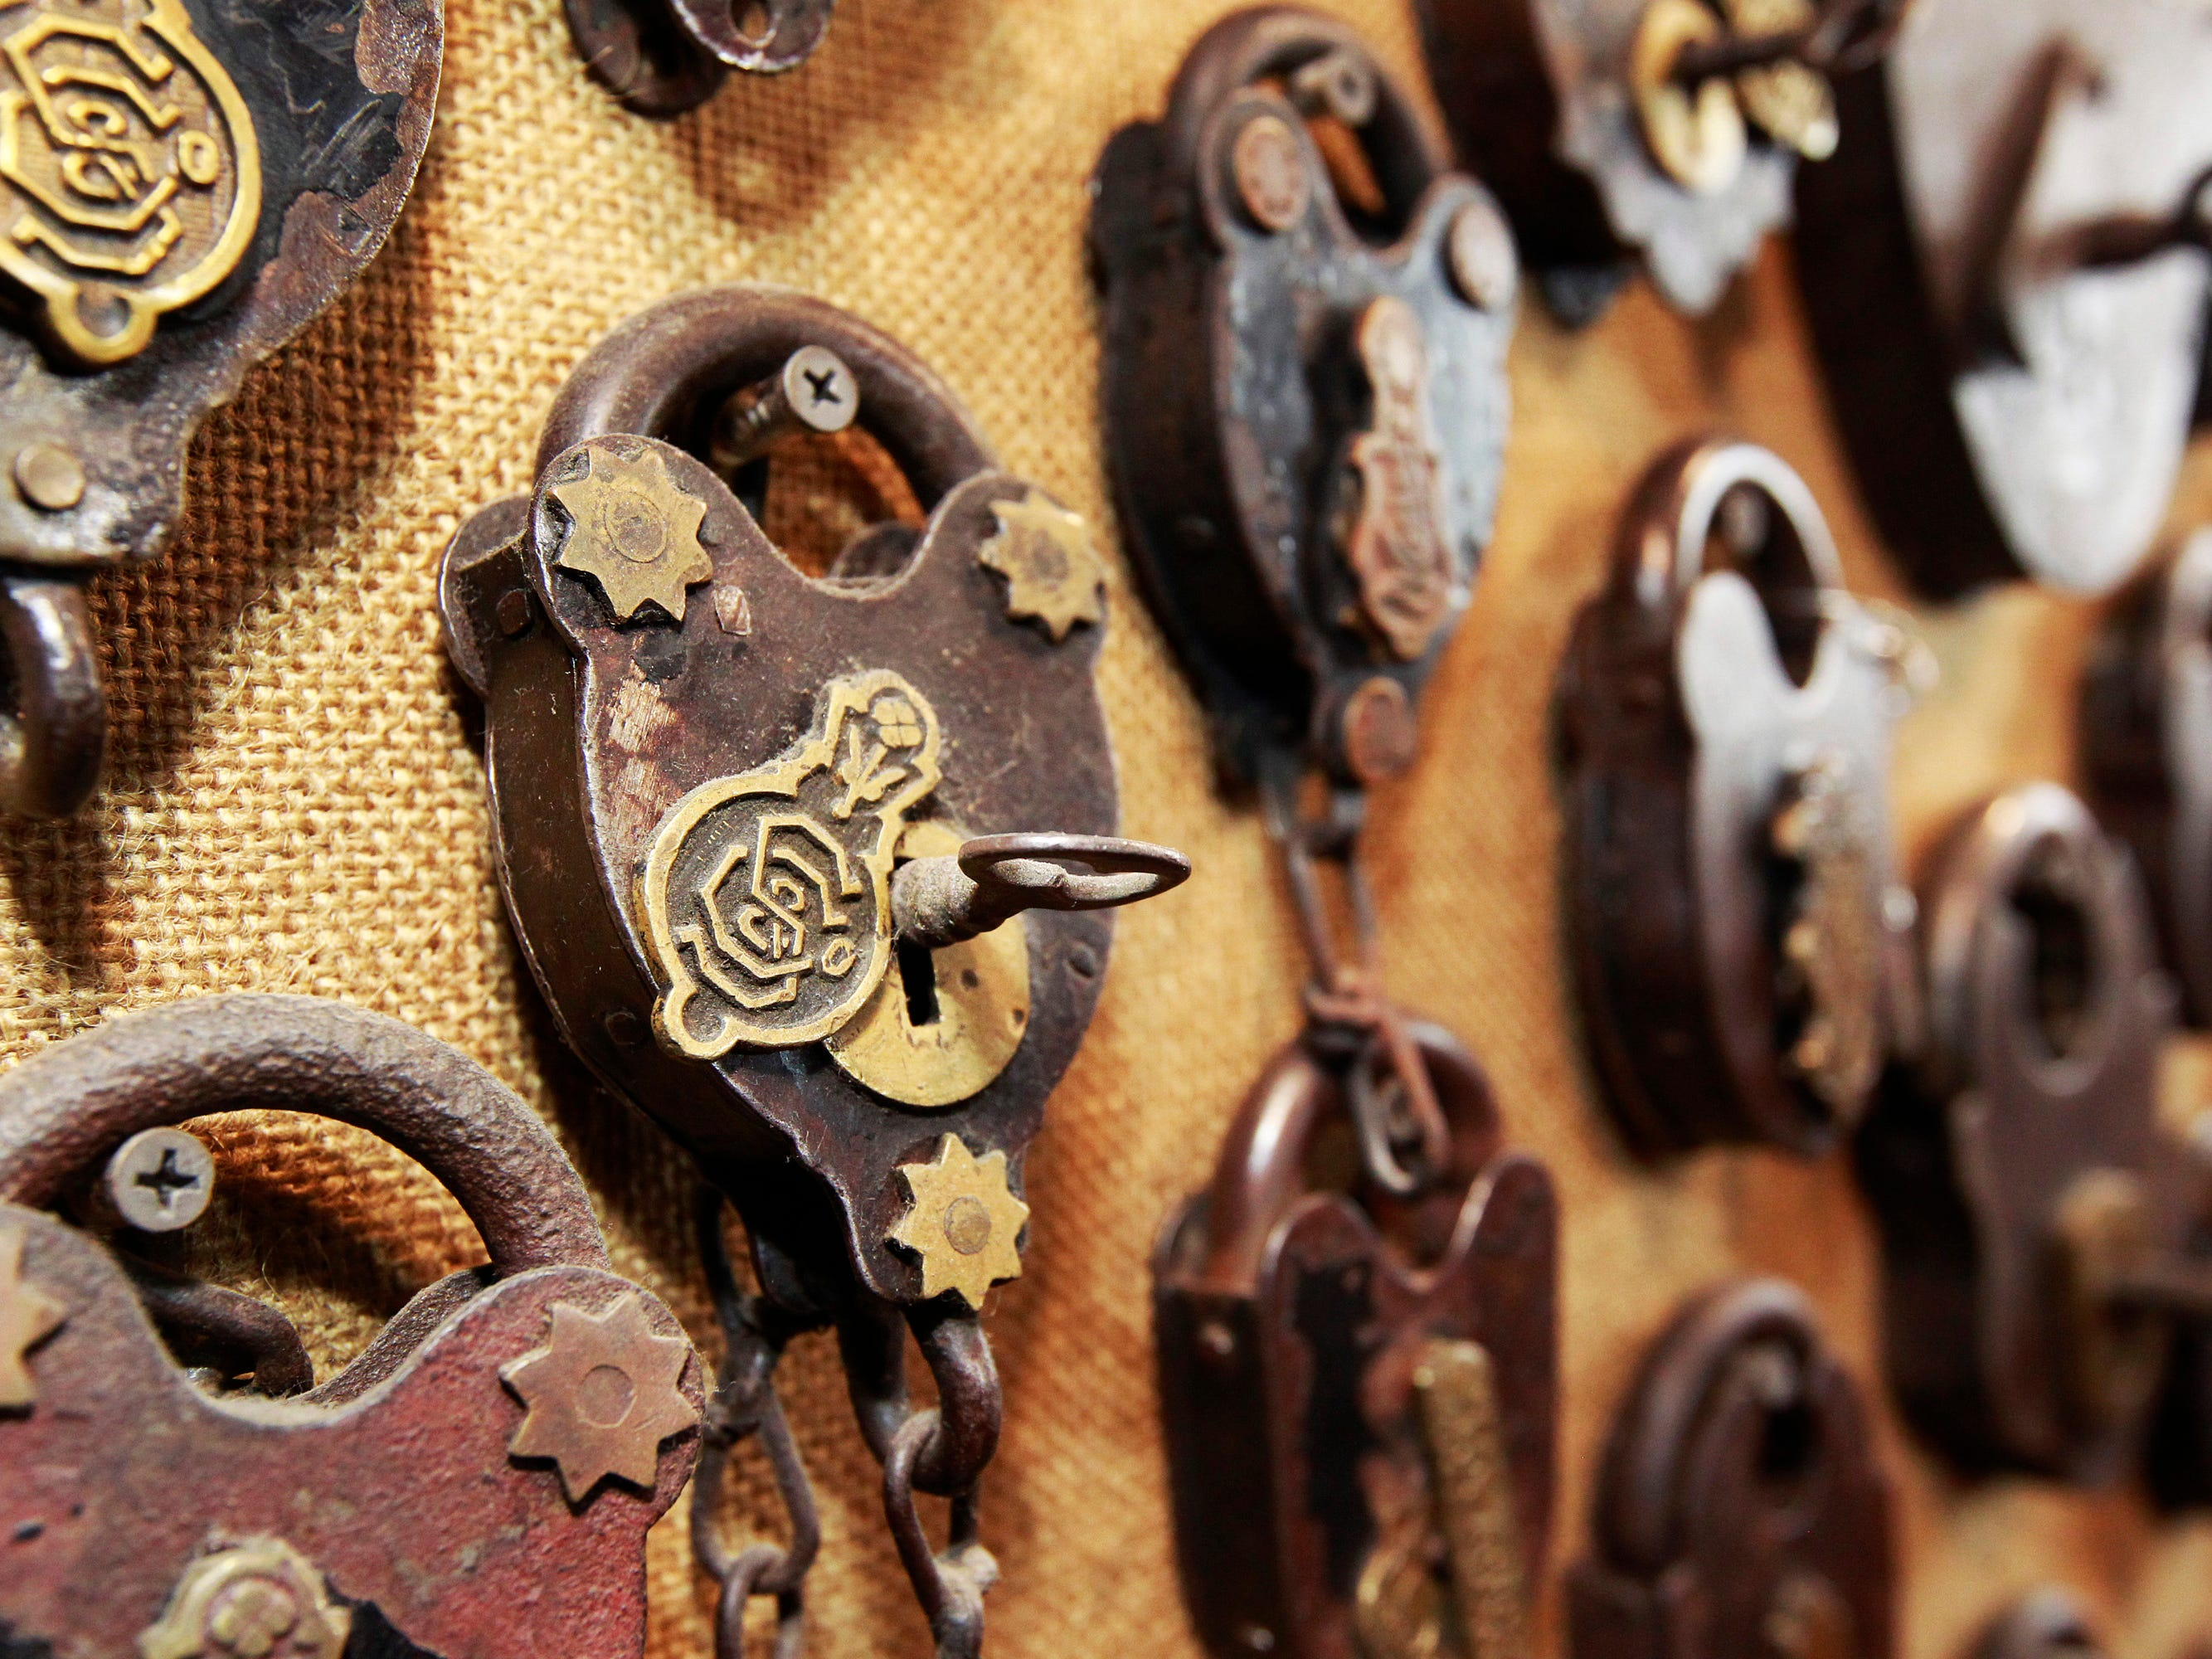 Scott Stephan displays some of his  antique locks that he's collected over the years. He's a retired master locksmith.